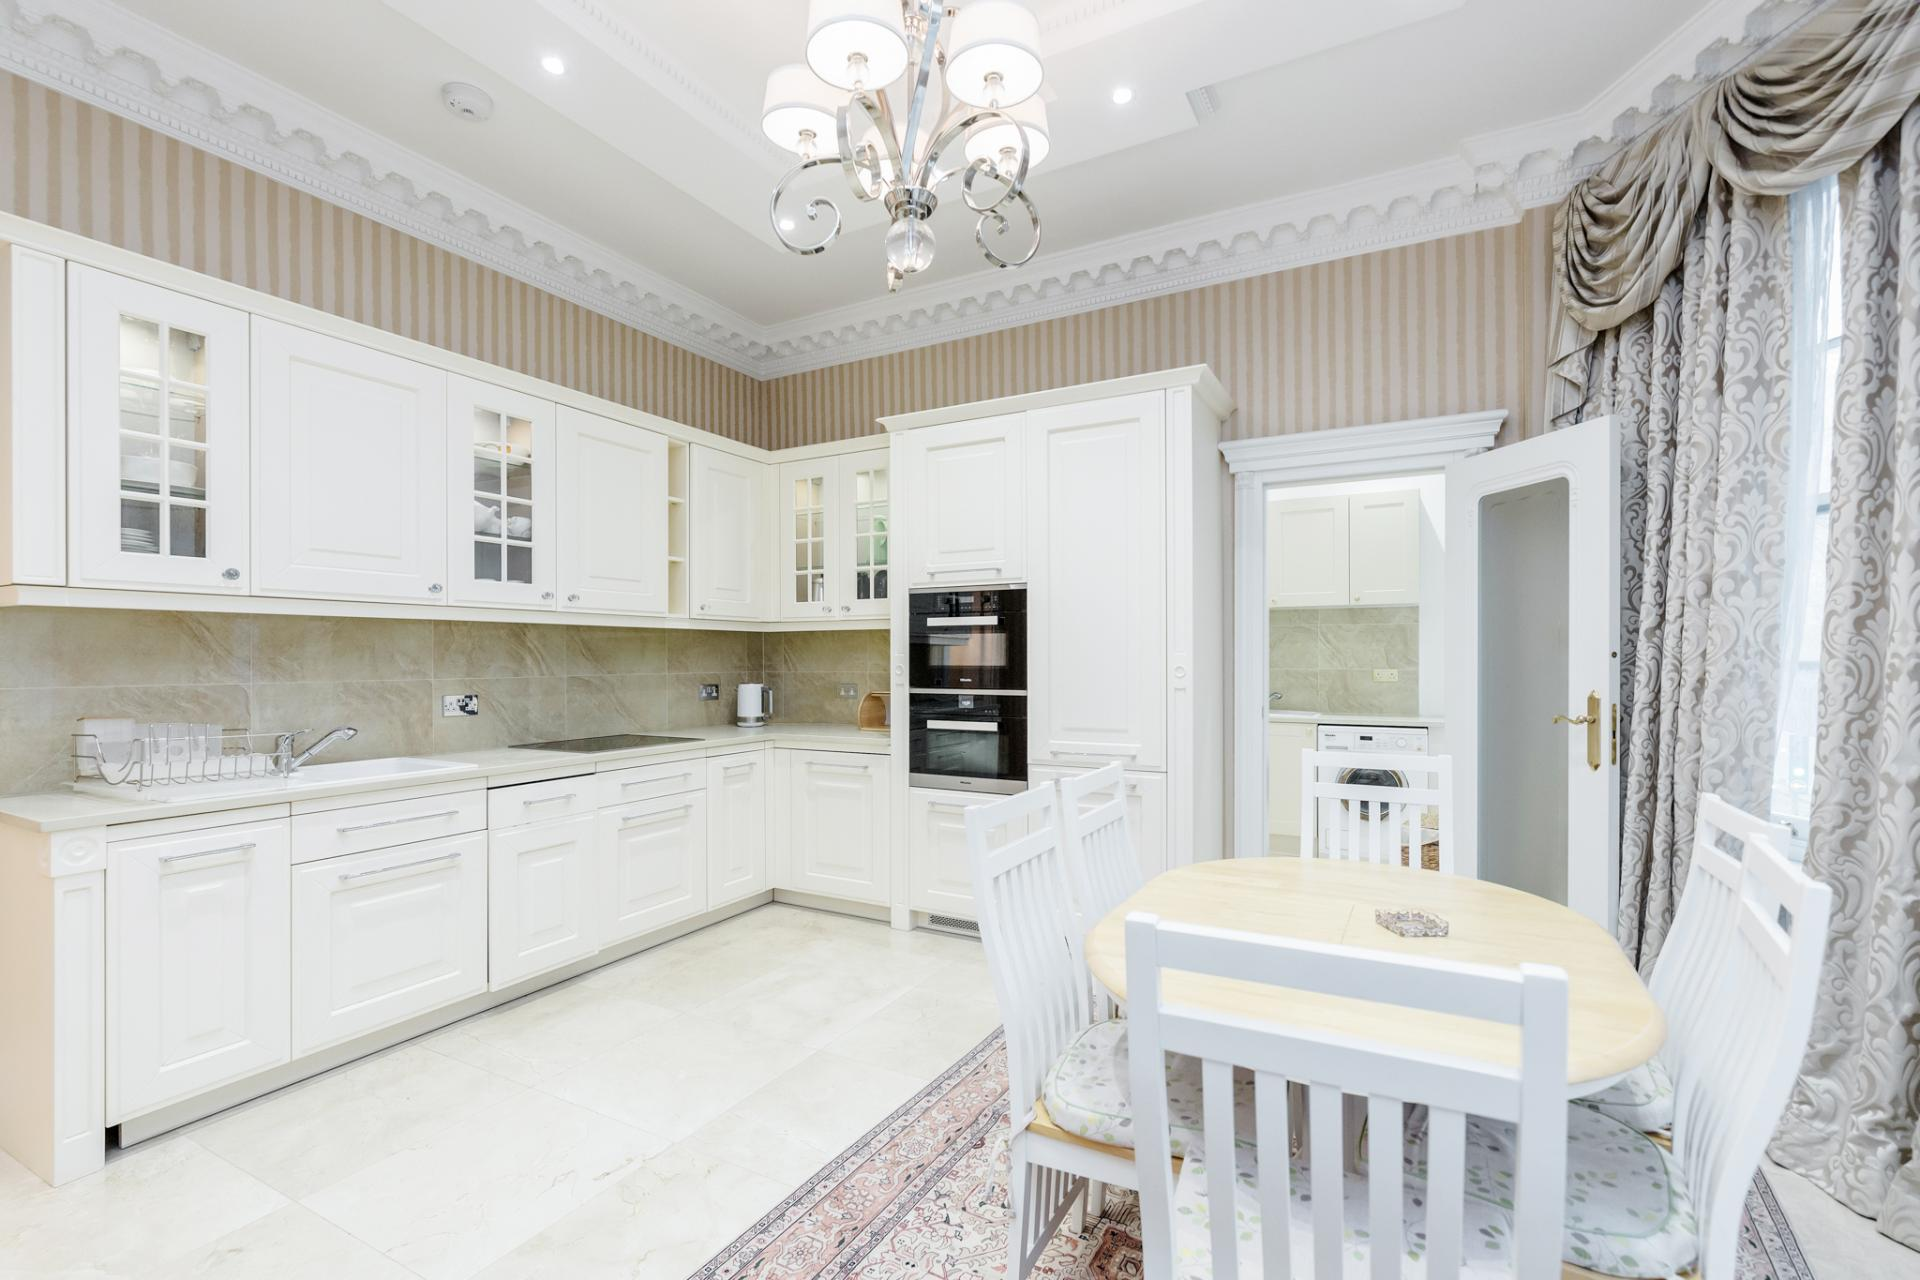 Kitchen at Hallway at Grosvenor Square Apartment, Mayfair, London - Citybase Apartments